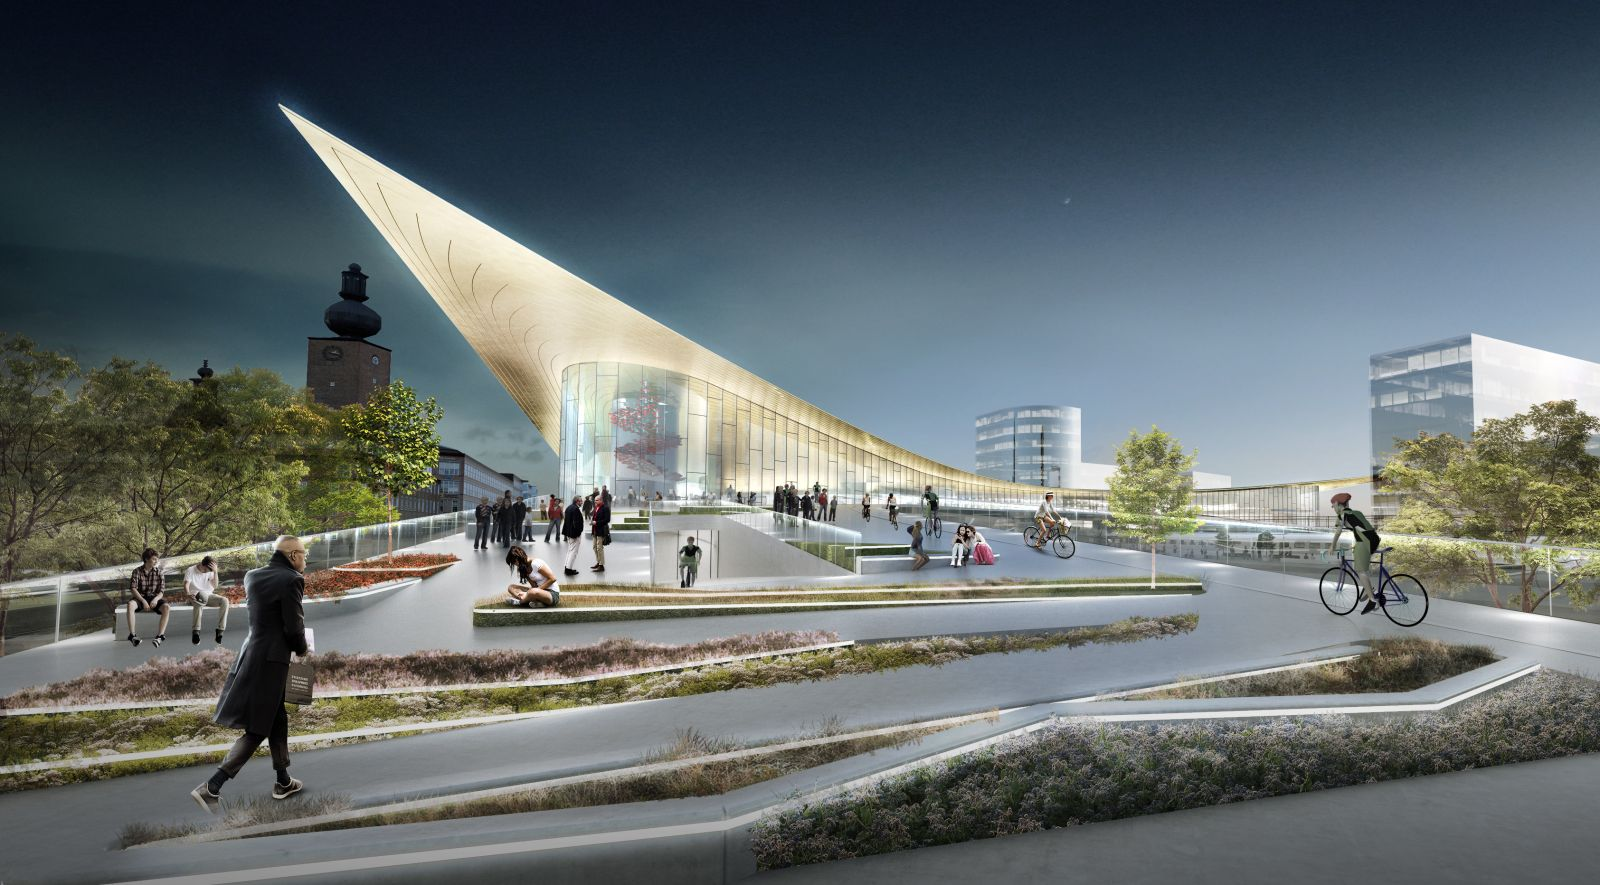 V ster s travel center by bjarke ingels group for Big bjarke ingels group